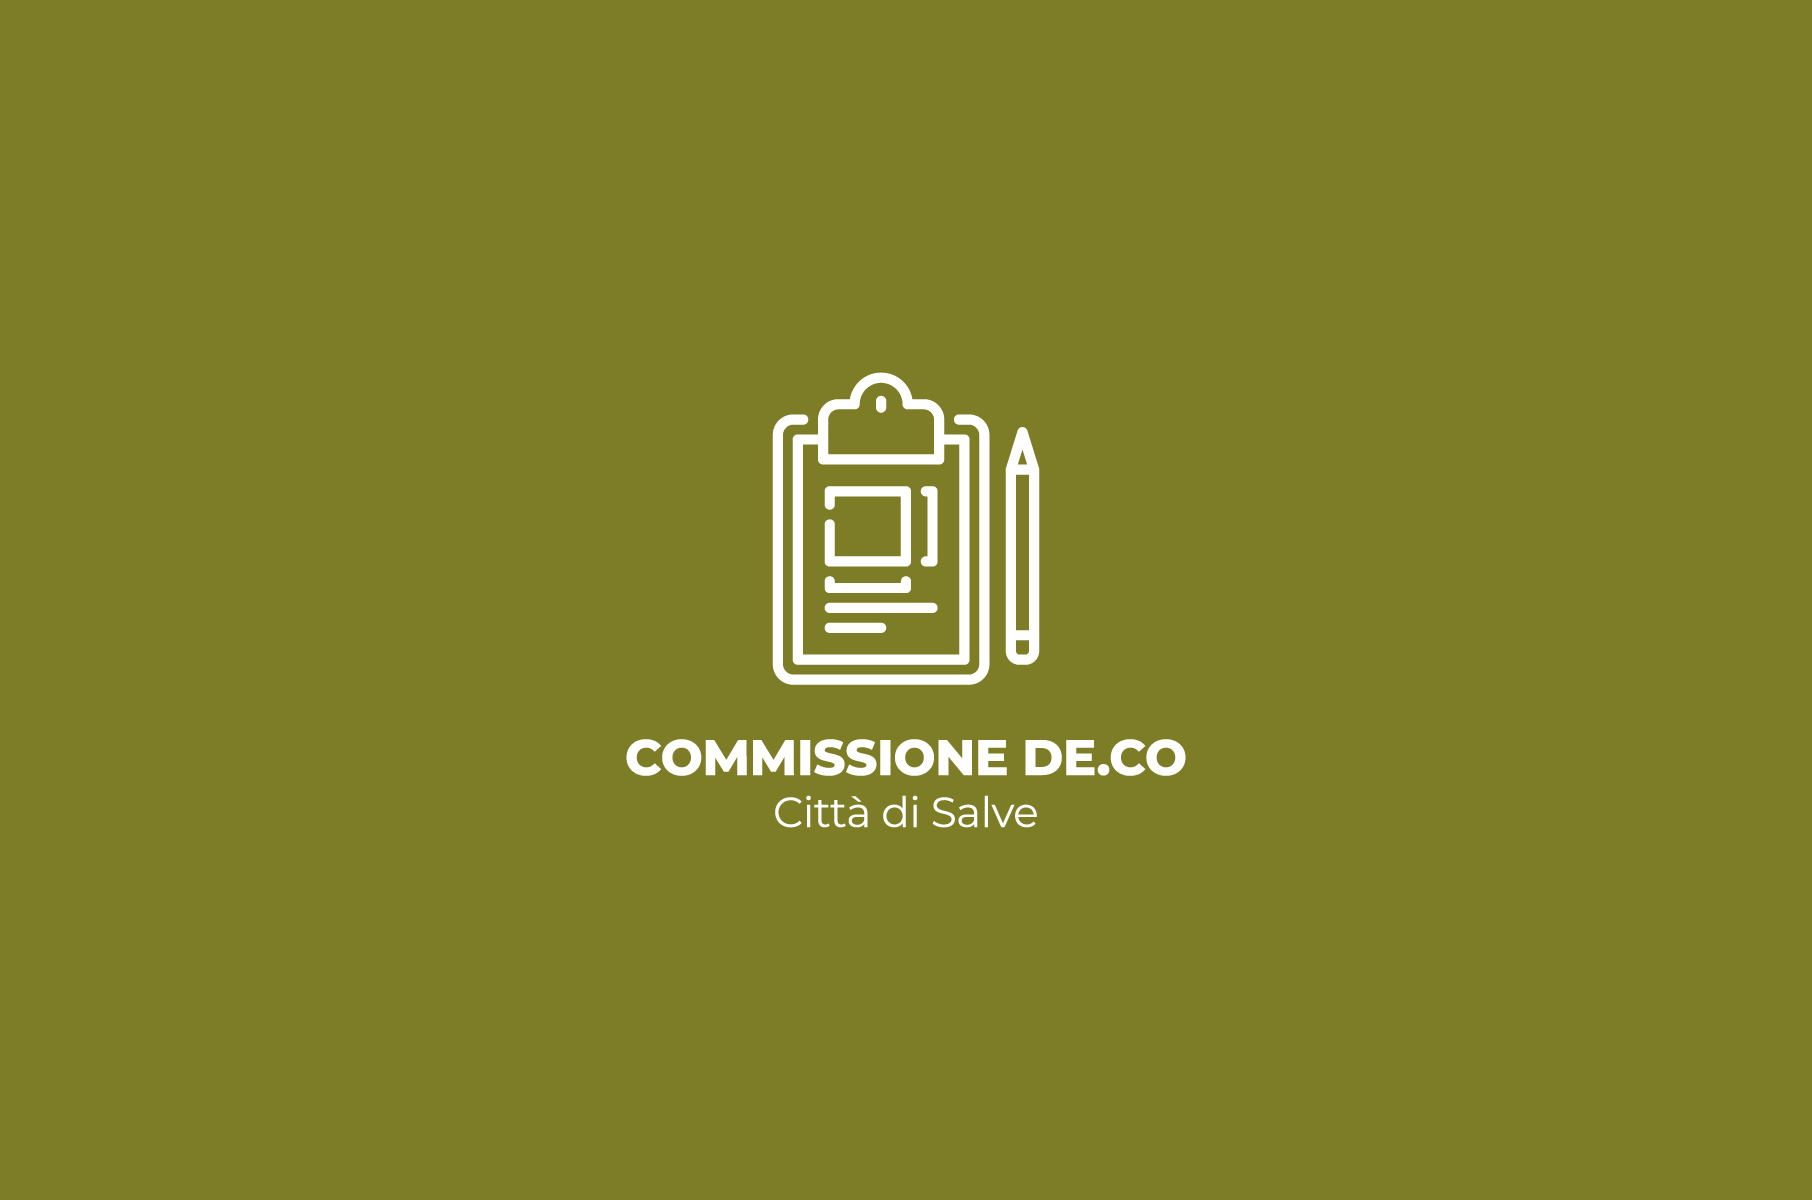 Commissione De.Co Comune di Salve